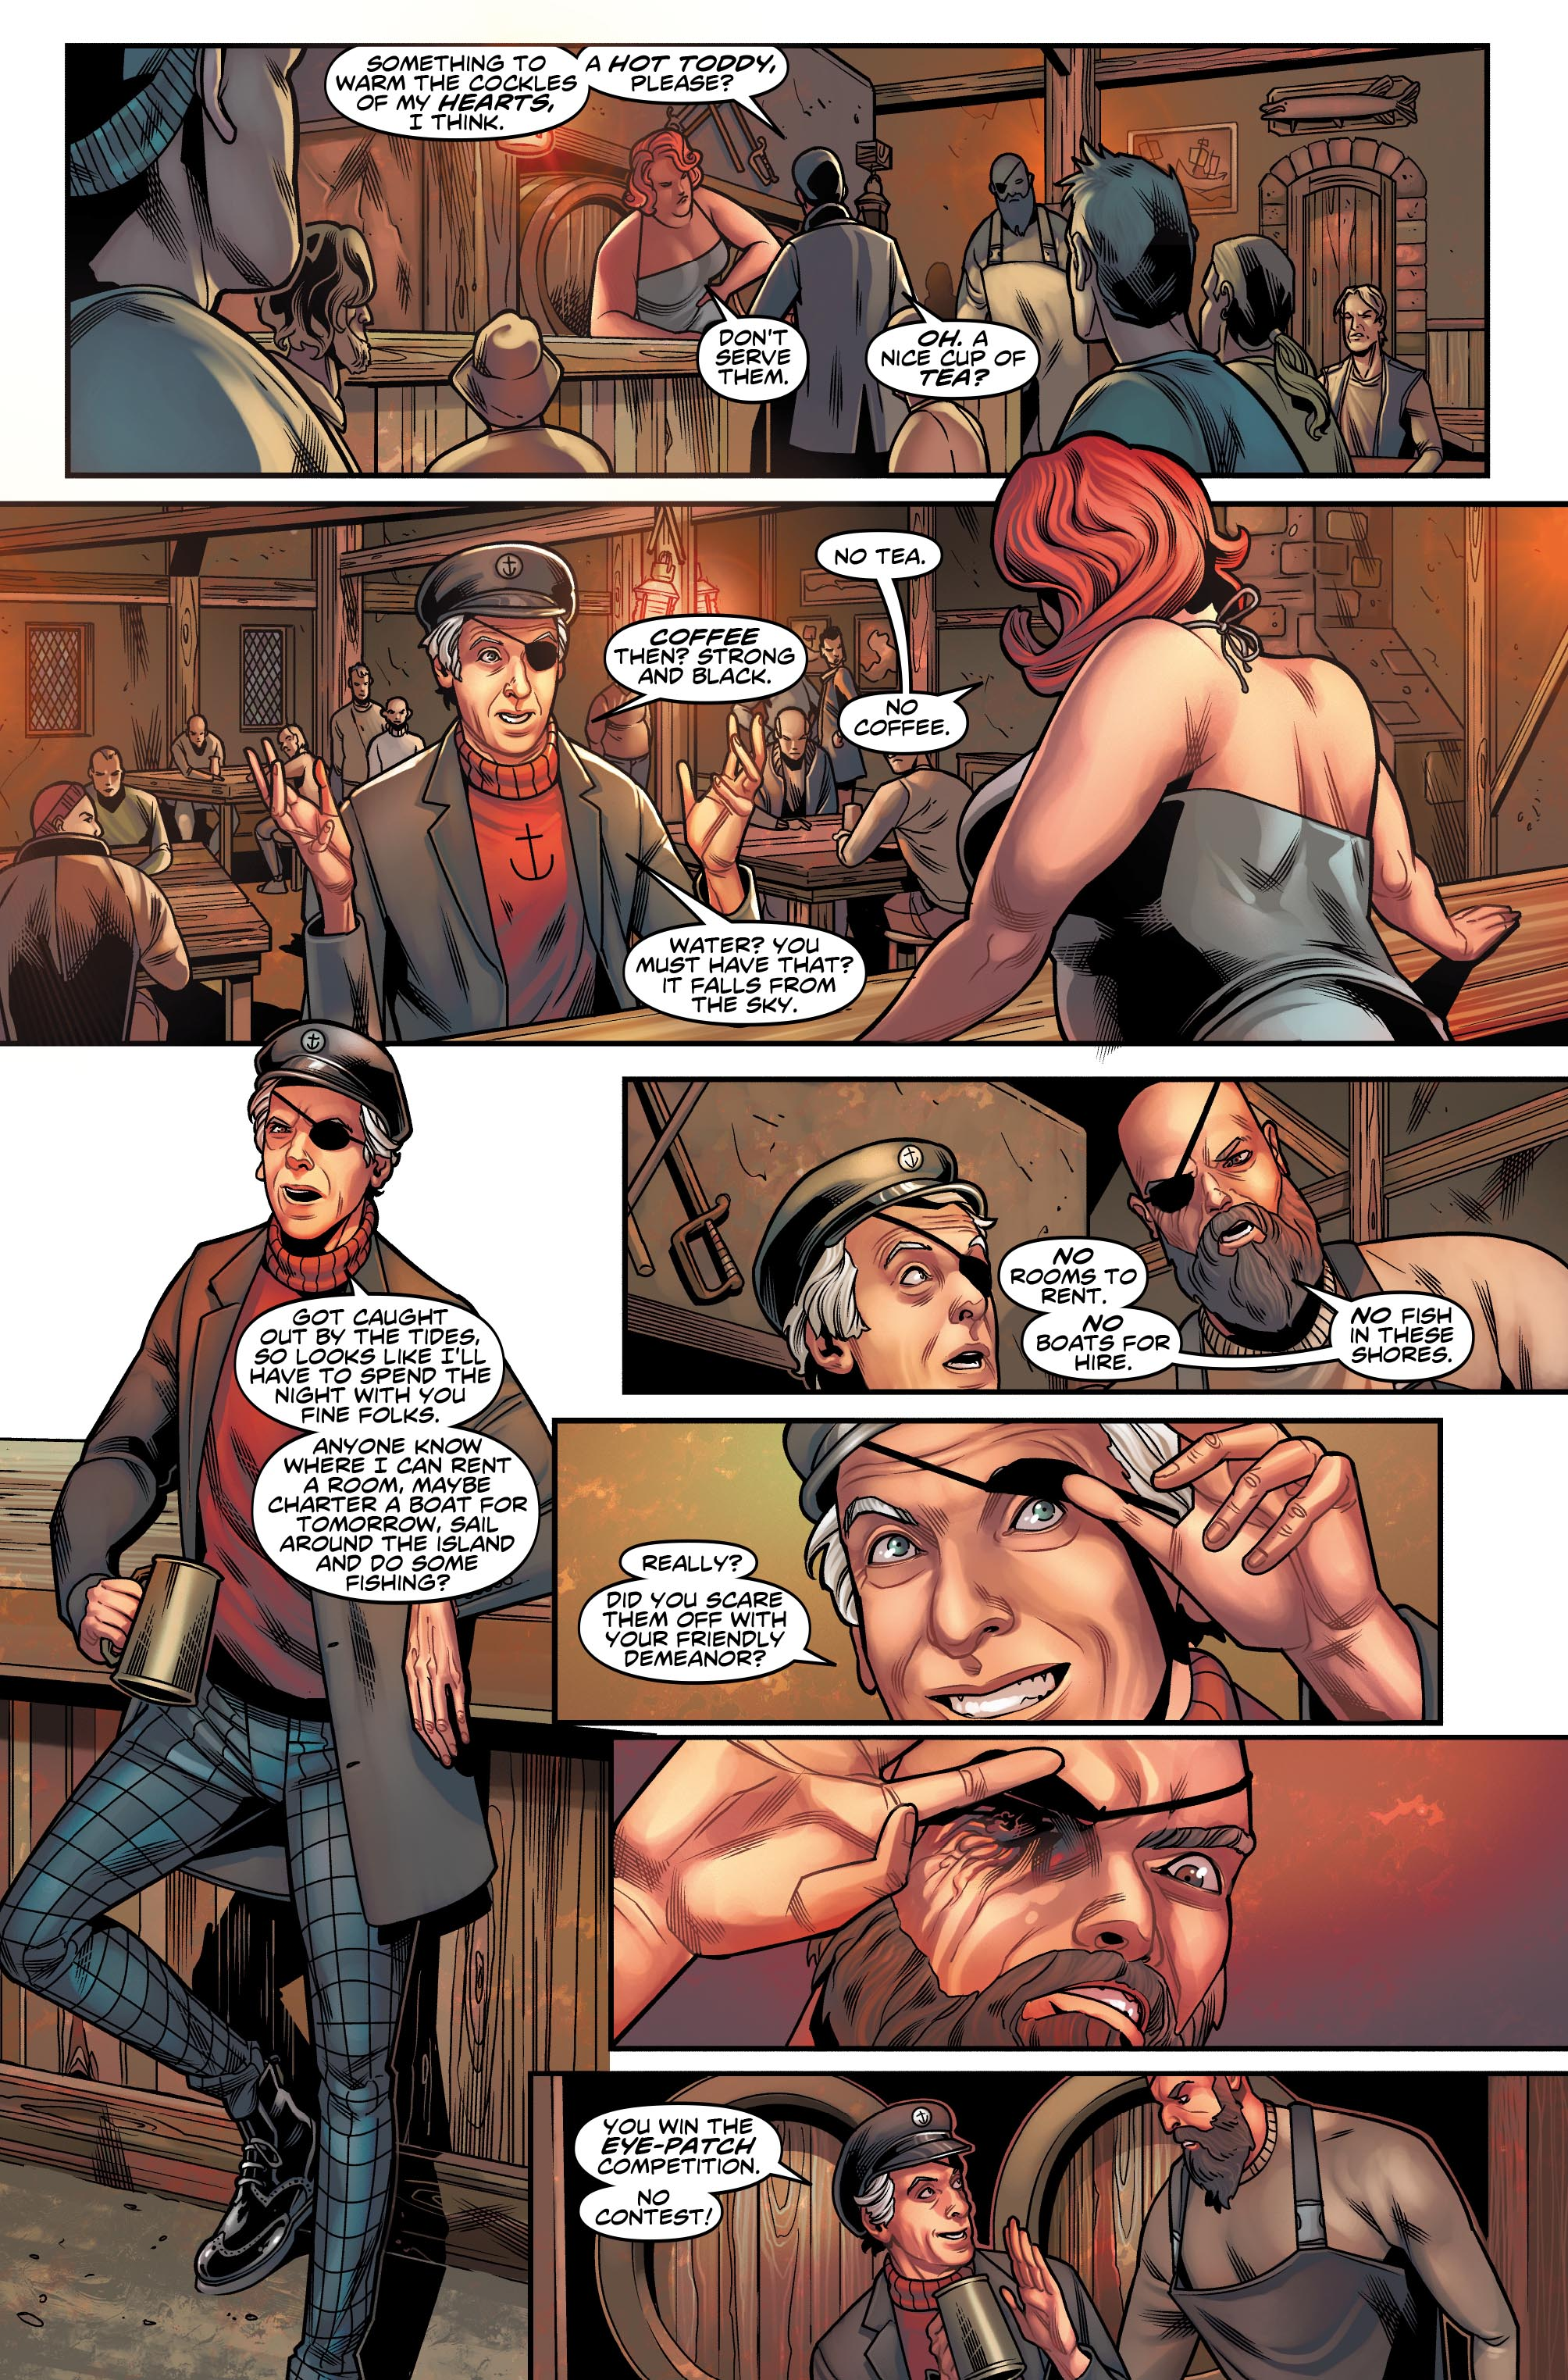 Doctor Who: The Twelfth Doctor #2.2 Preview Page